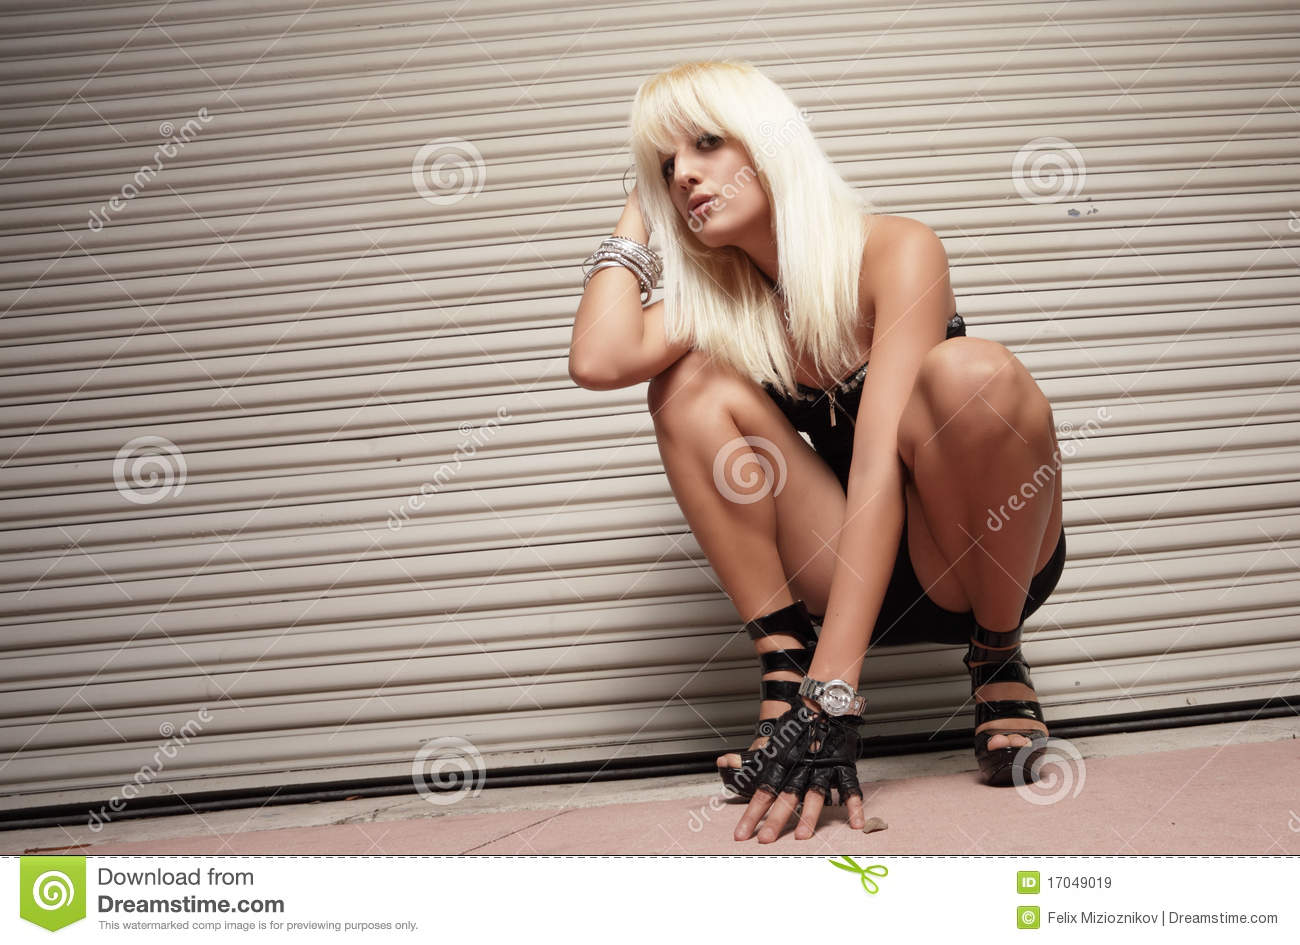 Think, Girl crouching porn picture goes